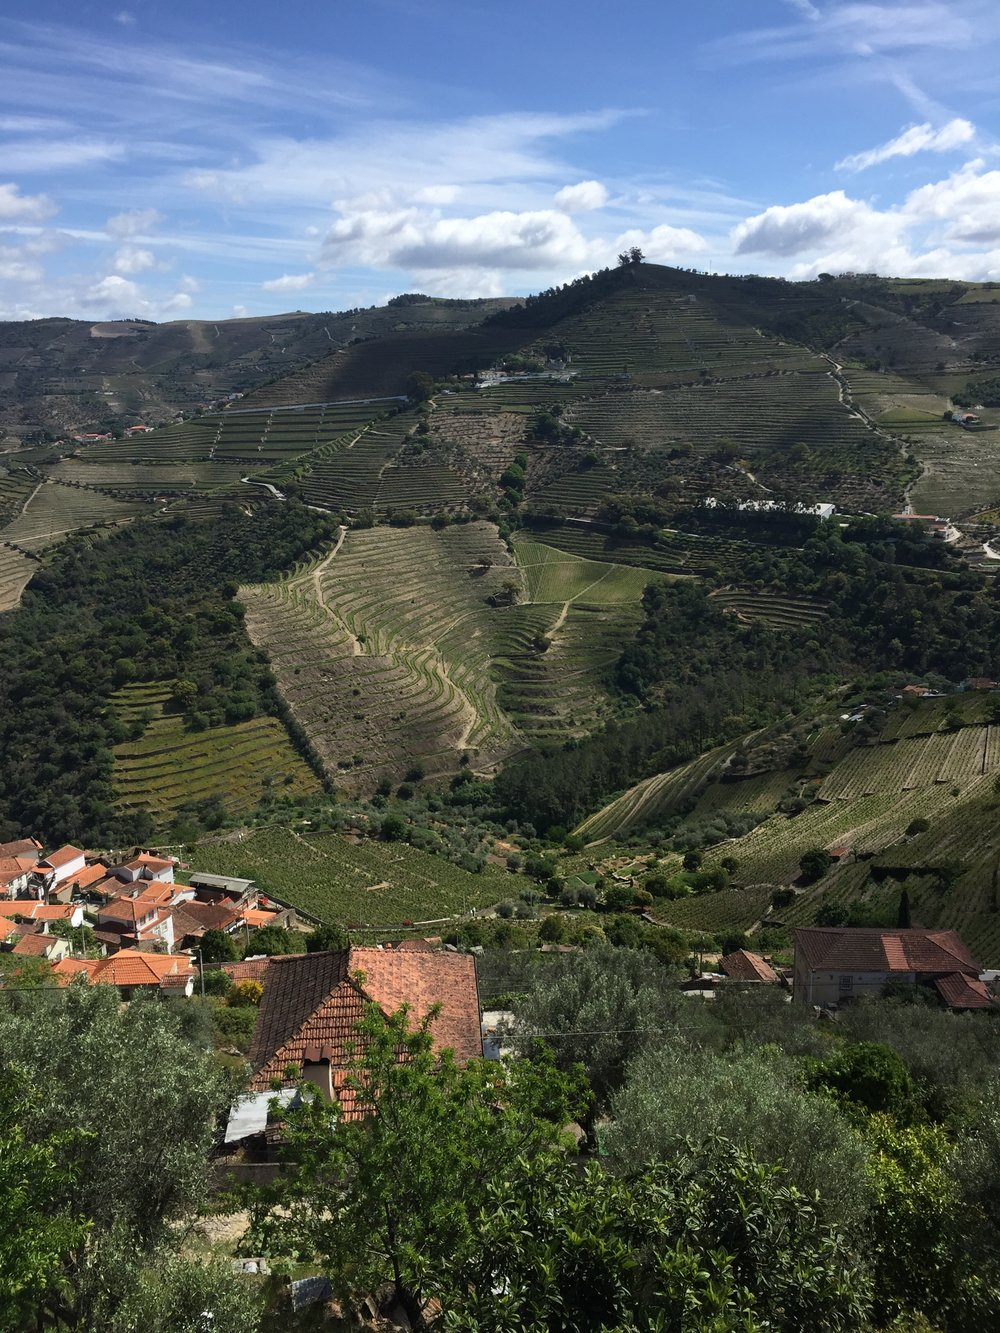 steep vineyards leading up to Quinta do Noval, one of the legendary port producers